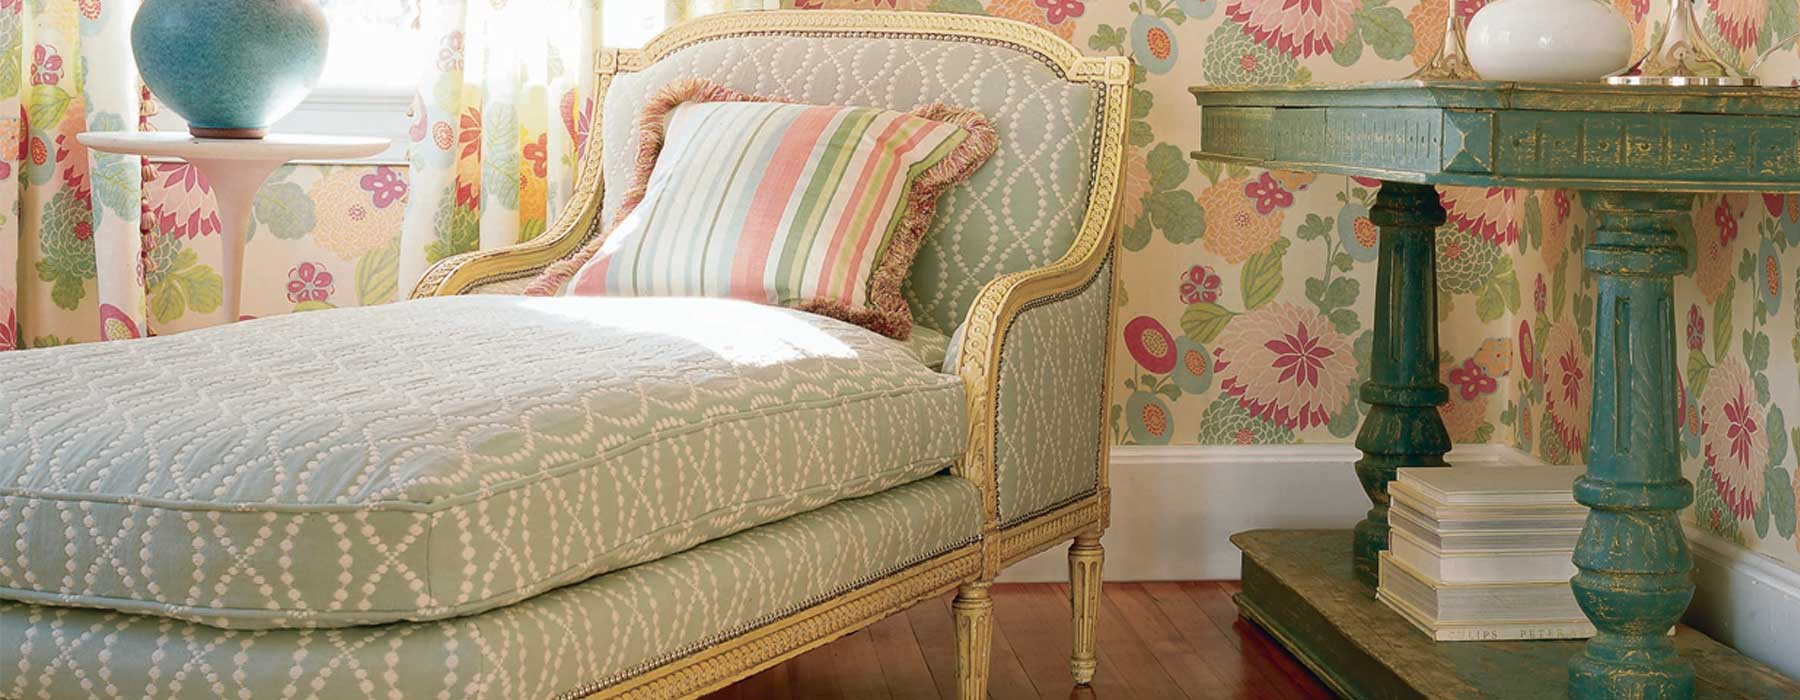 Reupholstery & Slipcovers